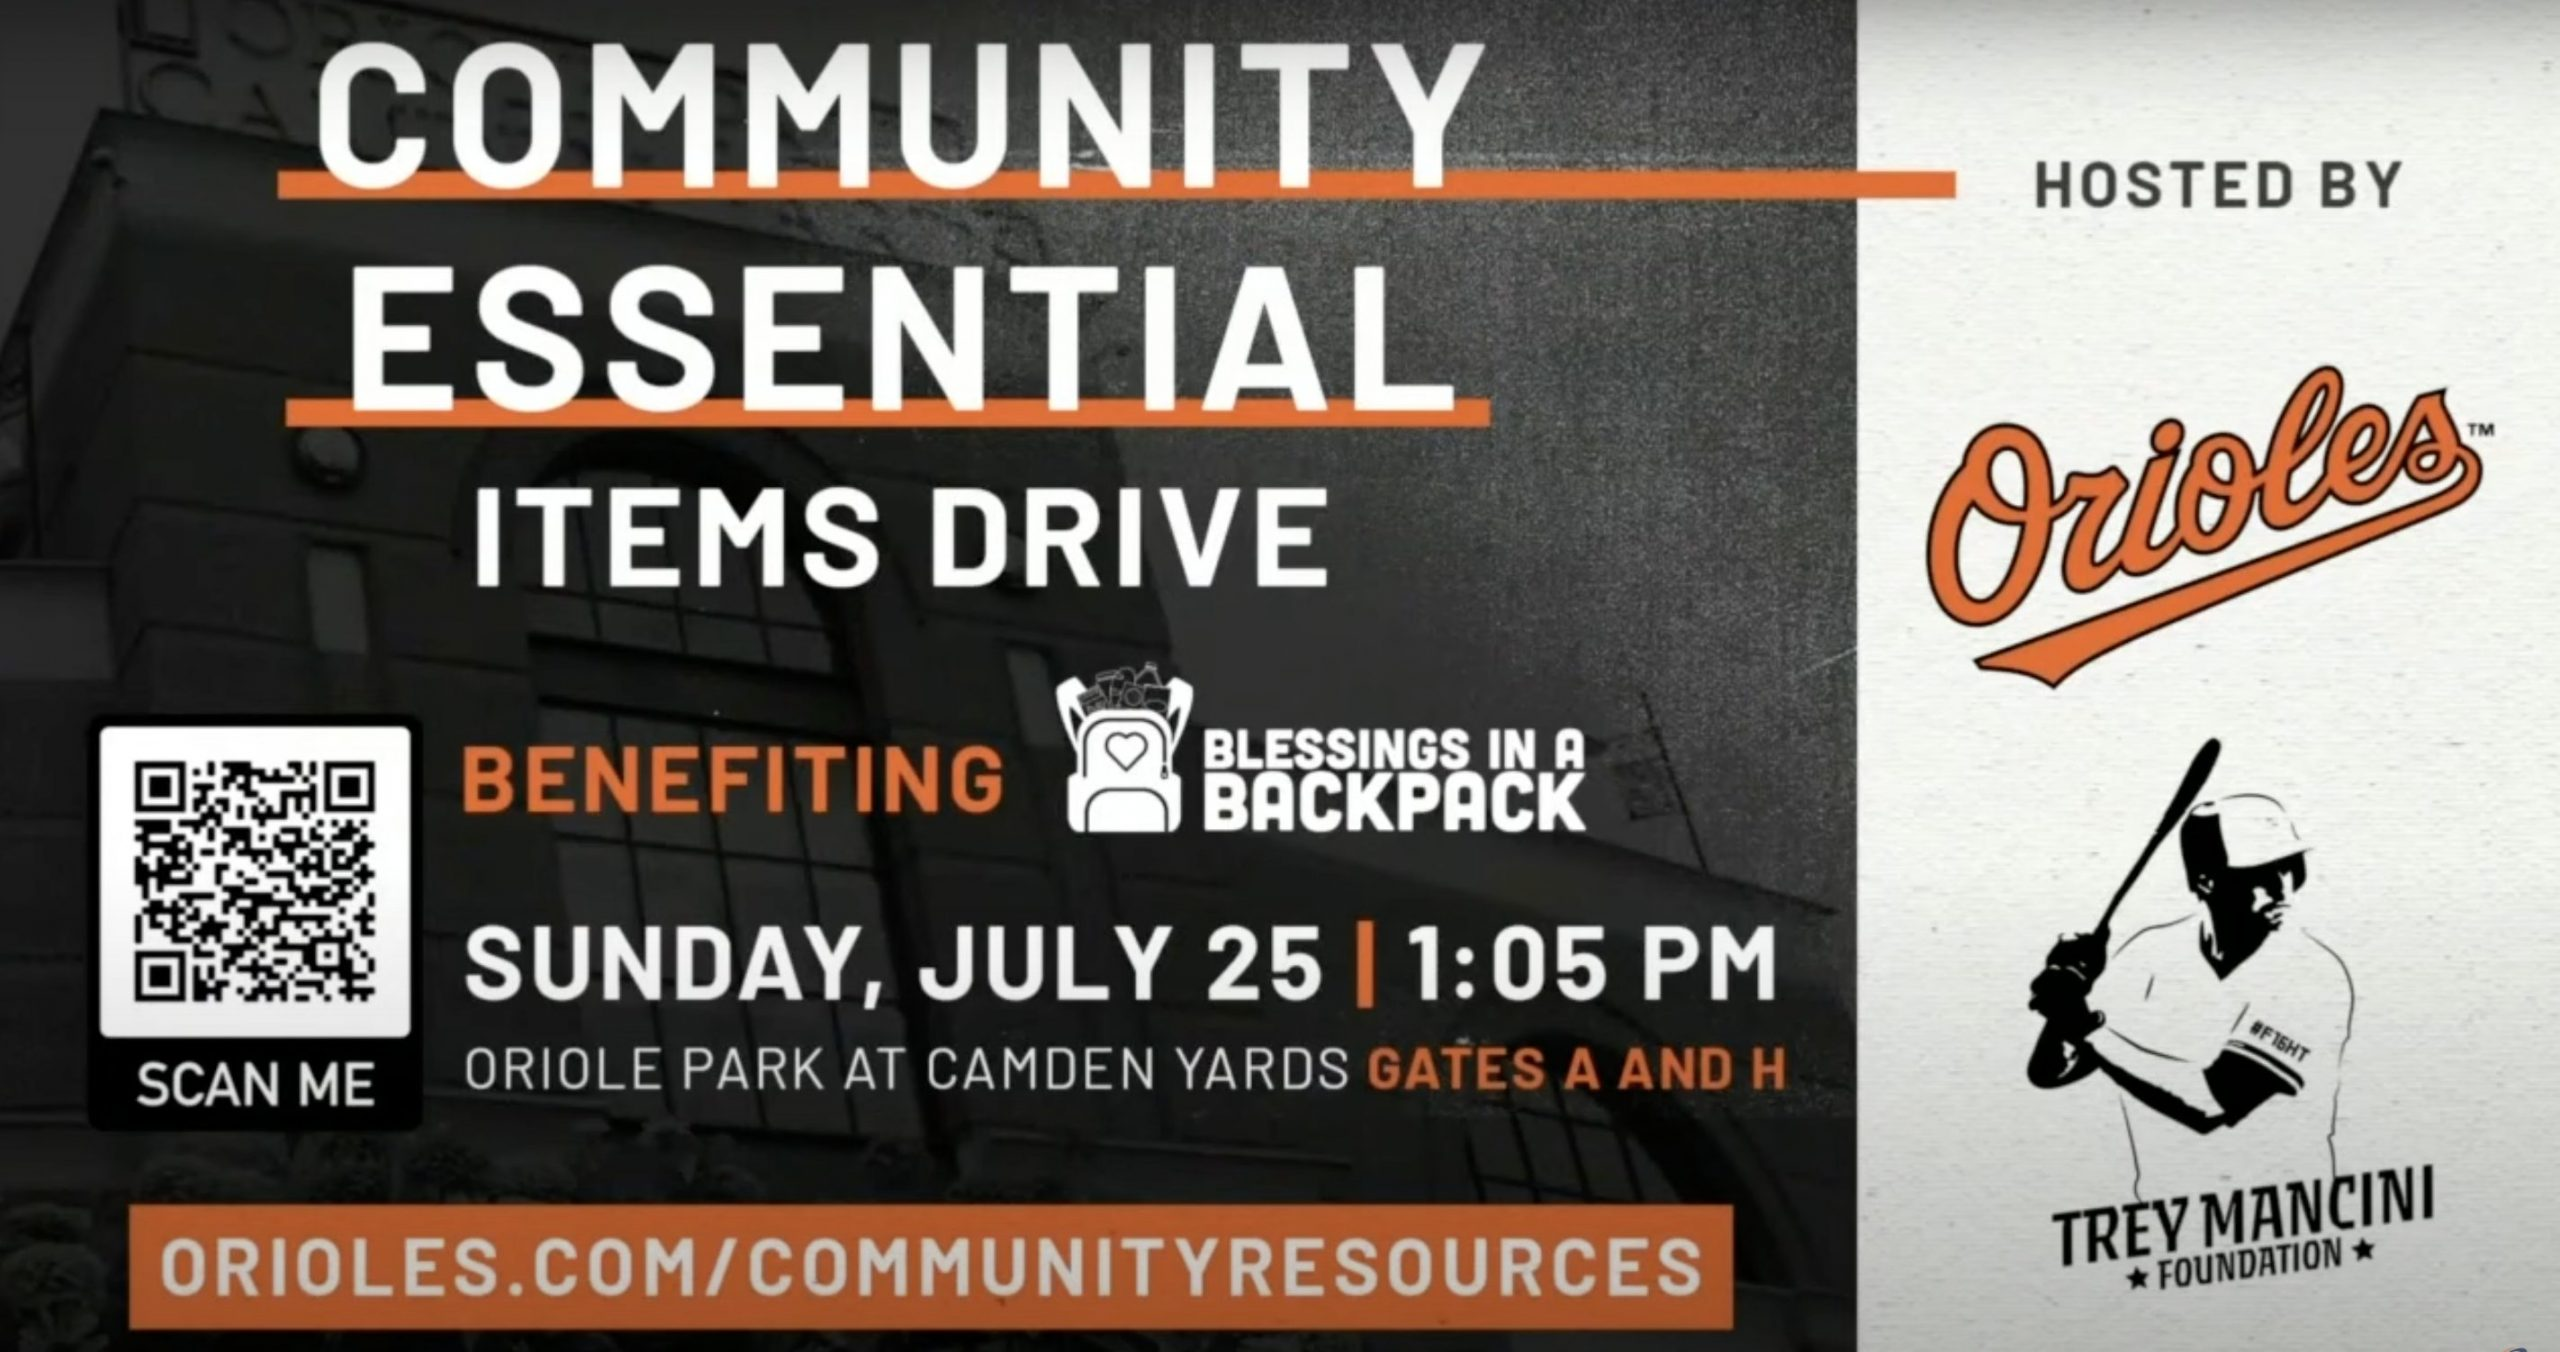 Orioles and Trey Mancini Foundation host Blessings in a Backpack event